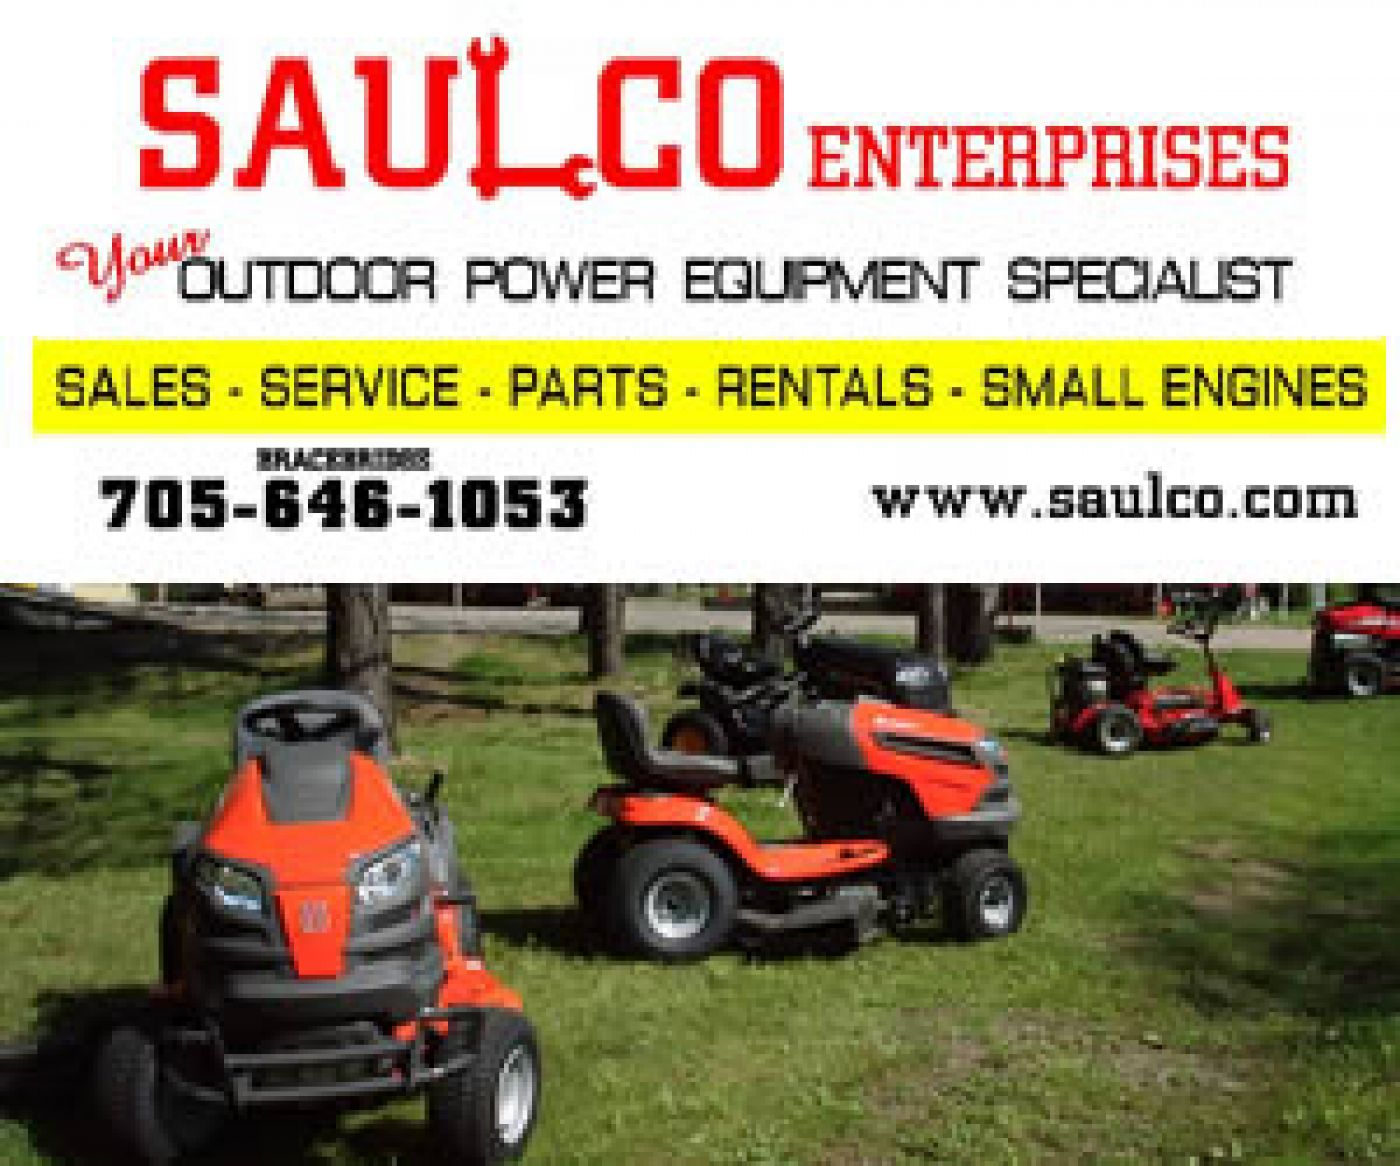 SAULCO Enterprises